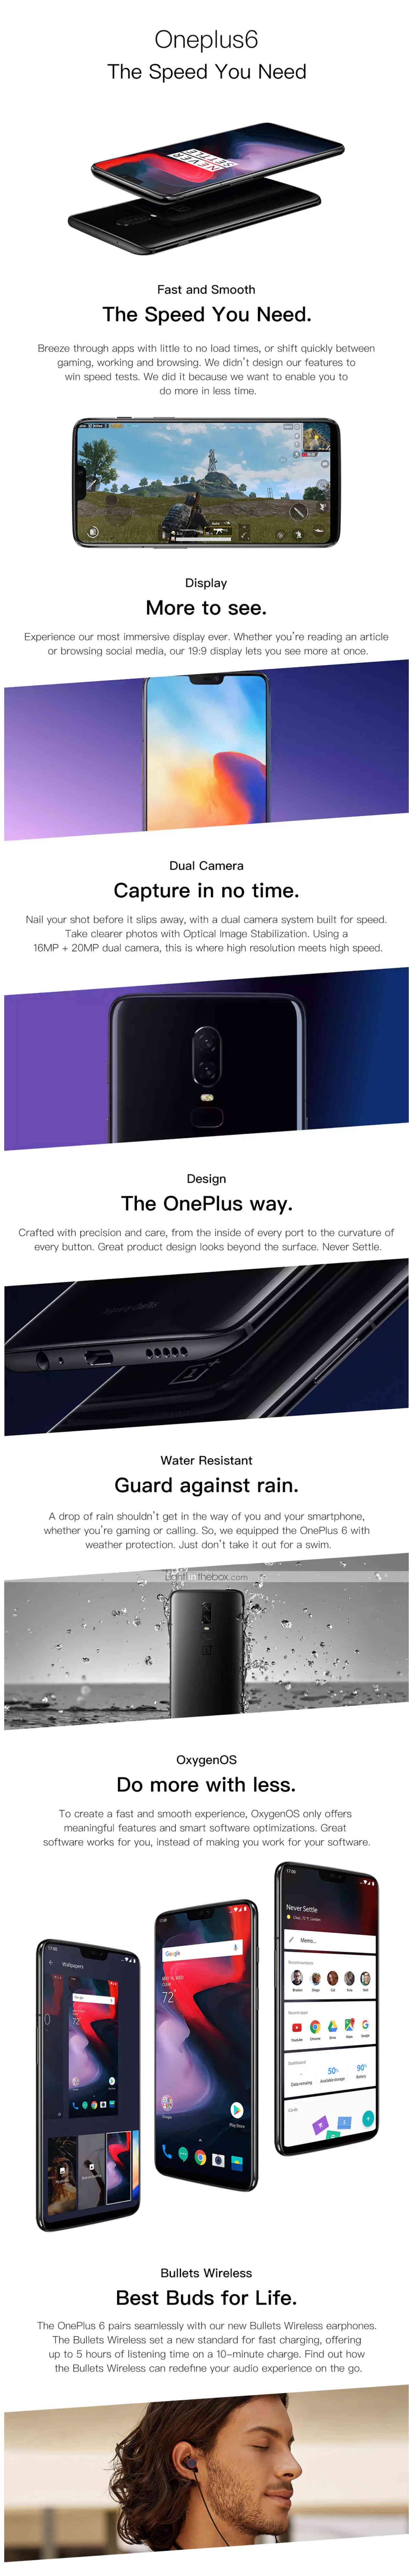 Oneplus 6 628 Inch 4g Smartphone 8gb 128gb 20 16 Mp Snapdragon Asus Zenfone 3 Zoom S Ze553kl Lte 55ampquot 4 64gb Photos